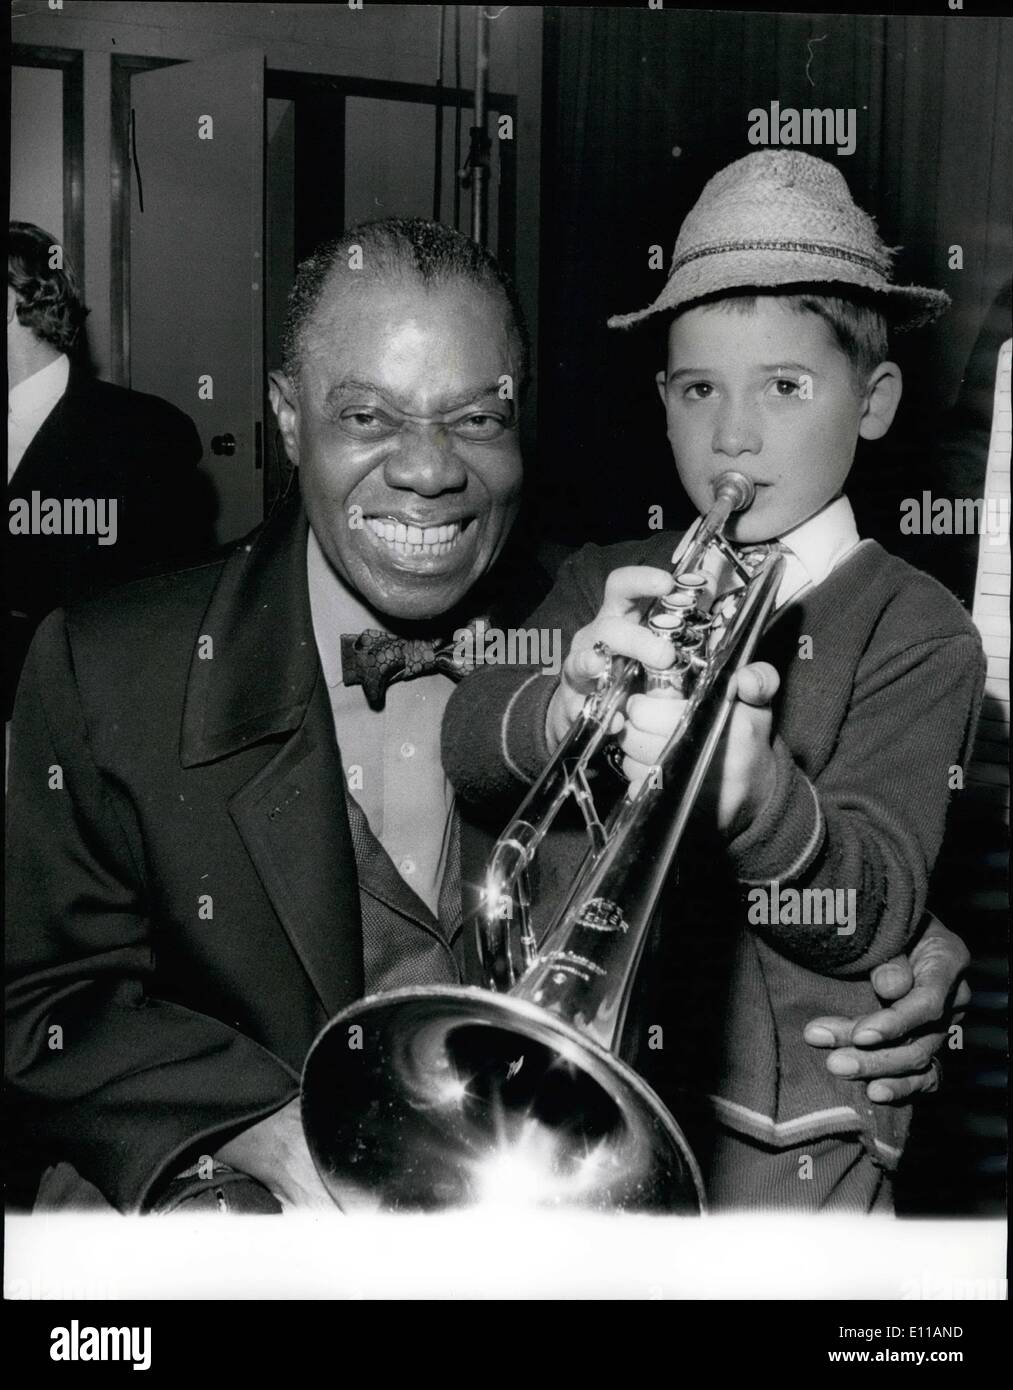 Oct. 10, 1976 - Louis Armstrong Arrives, Greeted by A Young Fan. Louis Satchmo Armstrong arrived at London Airport yesterday, and waiting to give him a welcome was one of his biggest fans, 9 years old Enrico Tomasso, who had made the journey from Yorkshire with his father, Mr. Ernie Tomasso, a clarinet player. Enrico had with him the trumpet he's been playing for only three years as Louis listened, Enrico serenaded him with Sleepy Time Down South . Photo Shows: Louis Satchmo Armstrong listens as 9 year old fan Enrico Tomasso serenades him at London Airport yesterday. - Stock Image